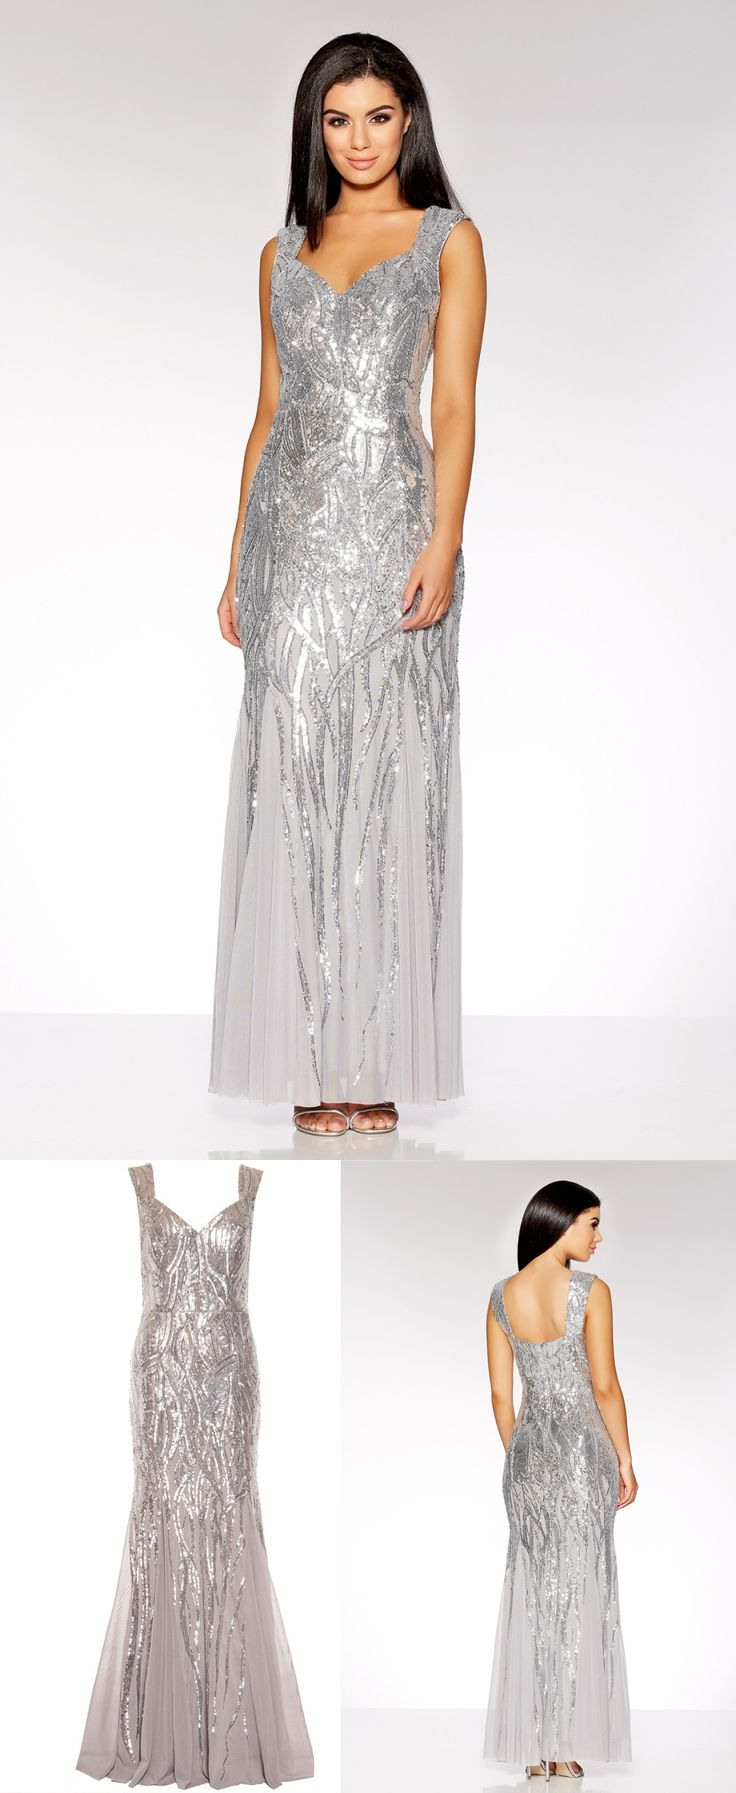 Silver Sequin Sweetheart Fishtail Maxi Dress. From Quiz